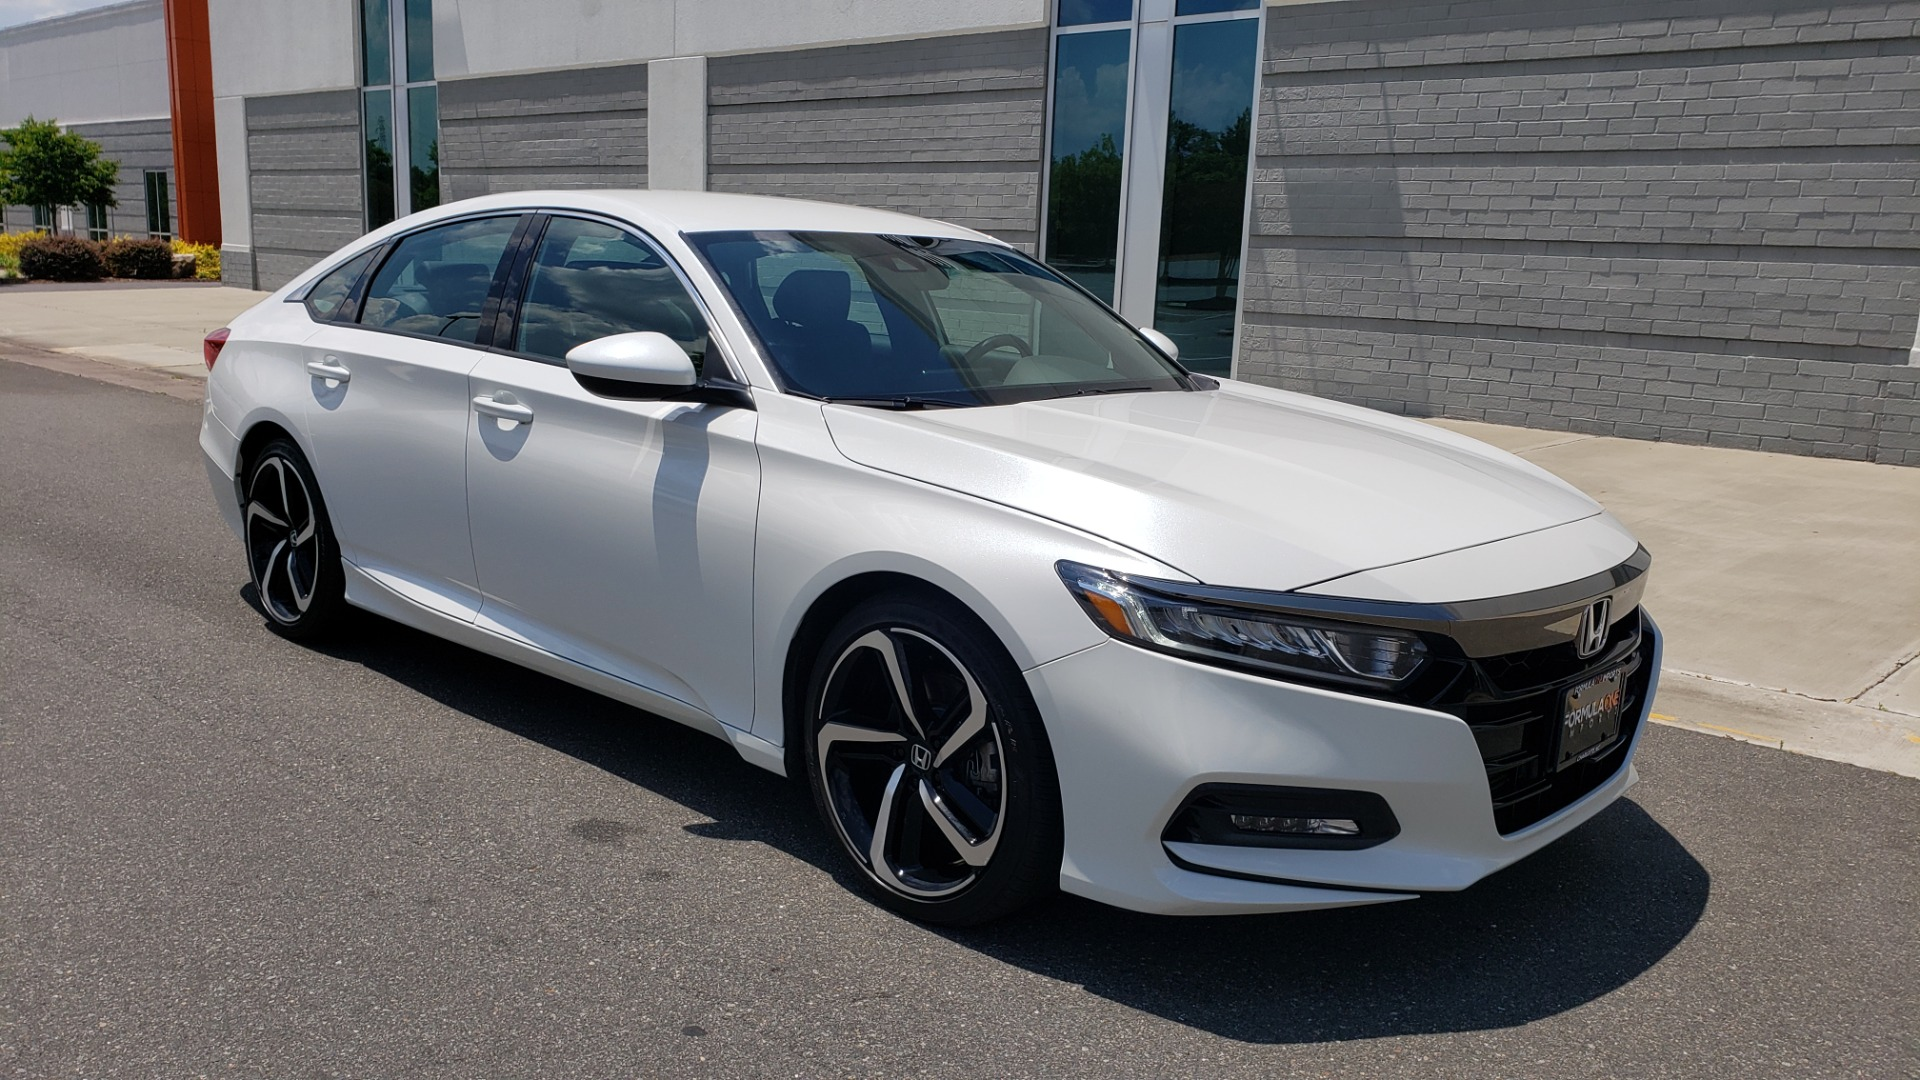 Used 2018 Honda ACCORD SEDAN SPORT 1.5T / CVT TRANS / FWD / 19IN WHEELS for sale $20,995 at Formula Imports in Charlotte NC 28227 11